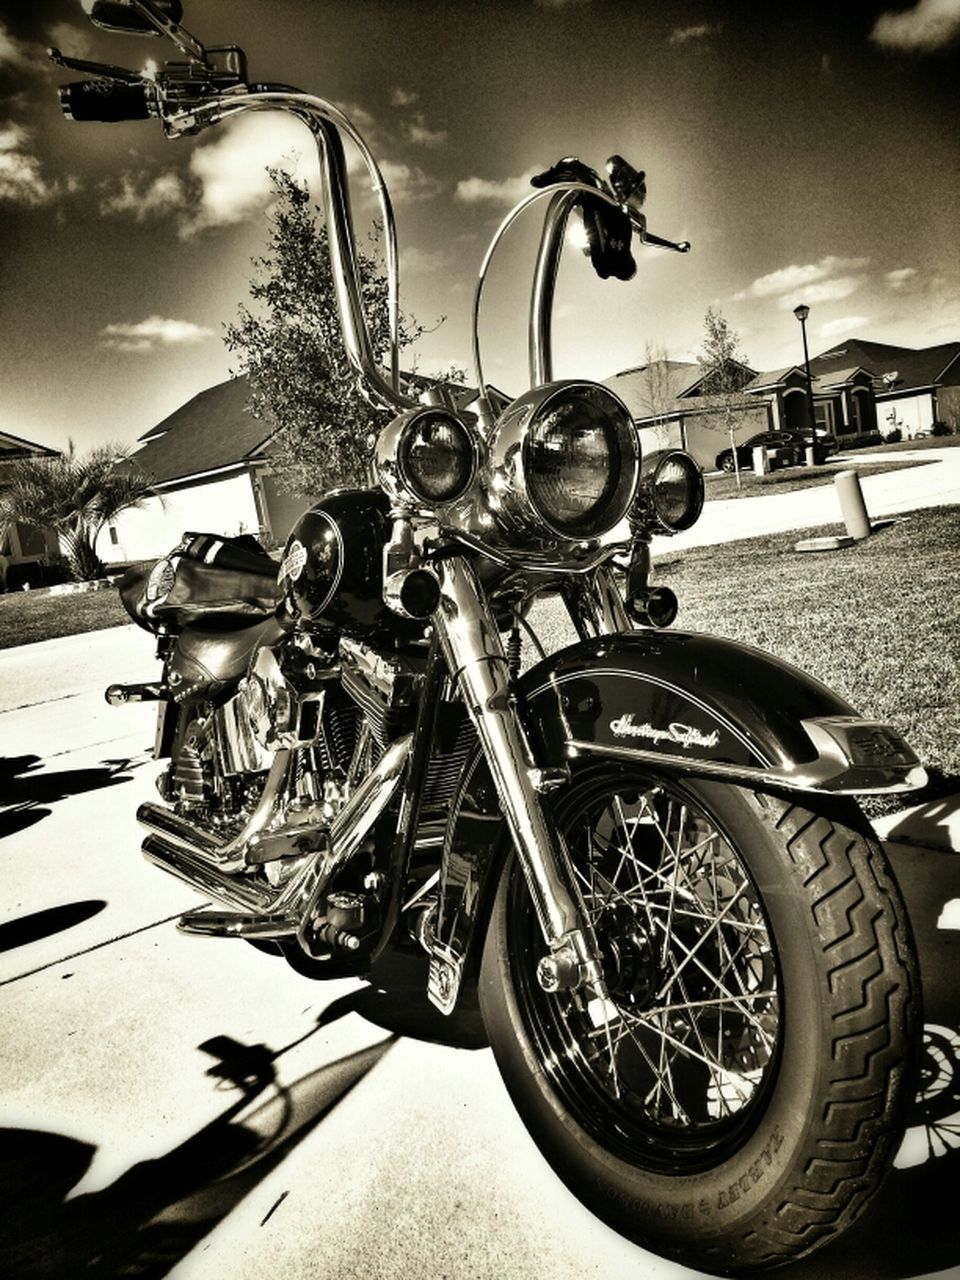 land vehicle, transportation, mode of transport, bicycle, wheel, motorcycle, stationary, parked, sky, outdoors, day, no people, cycle, cloud - sky